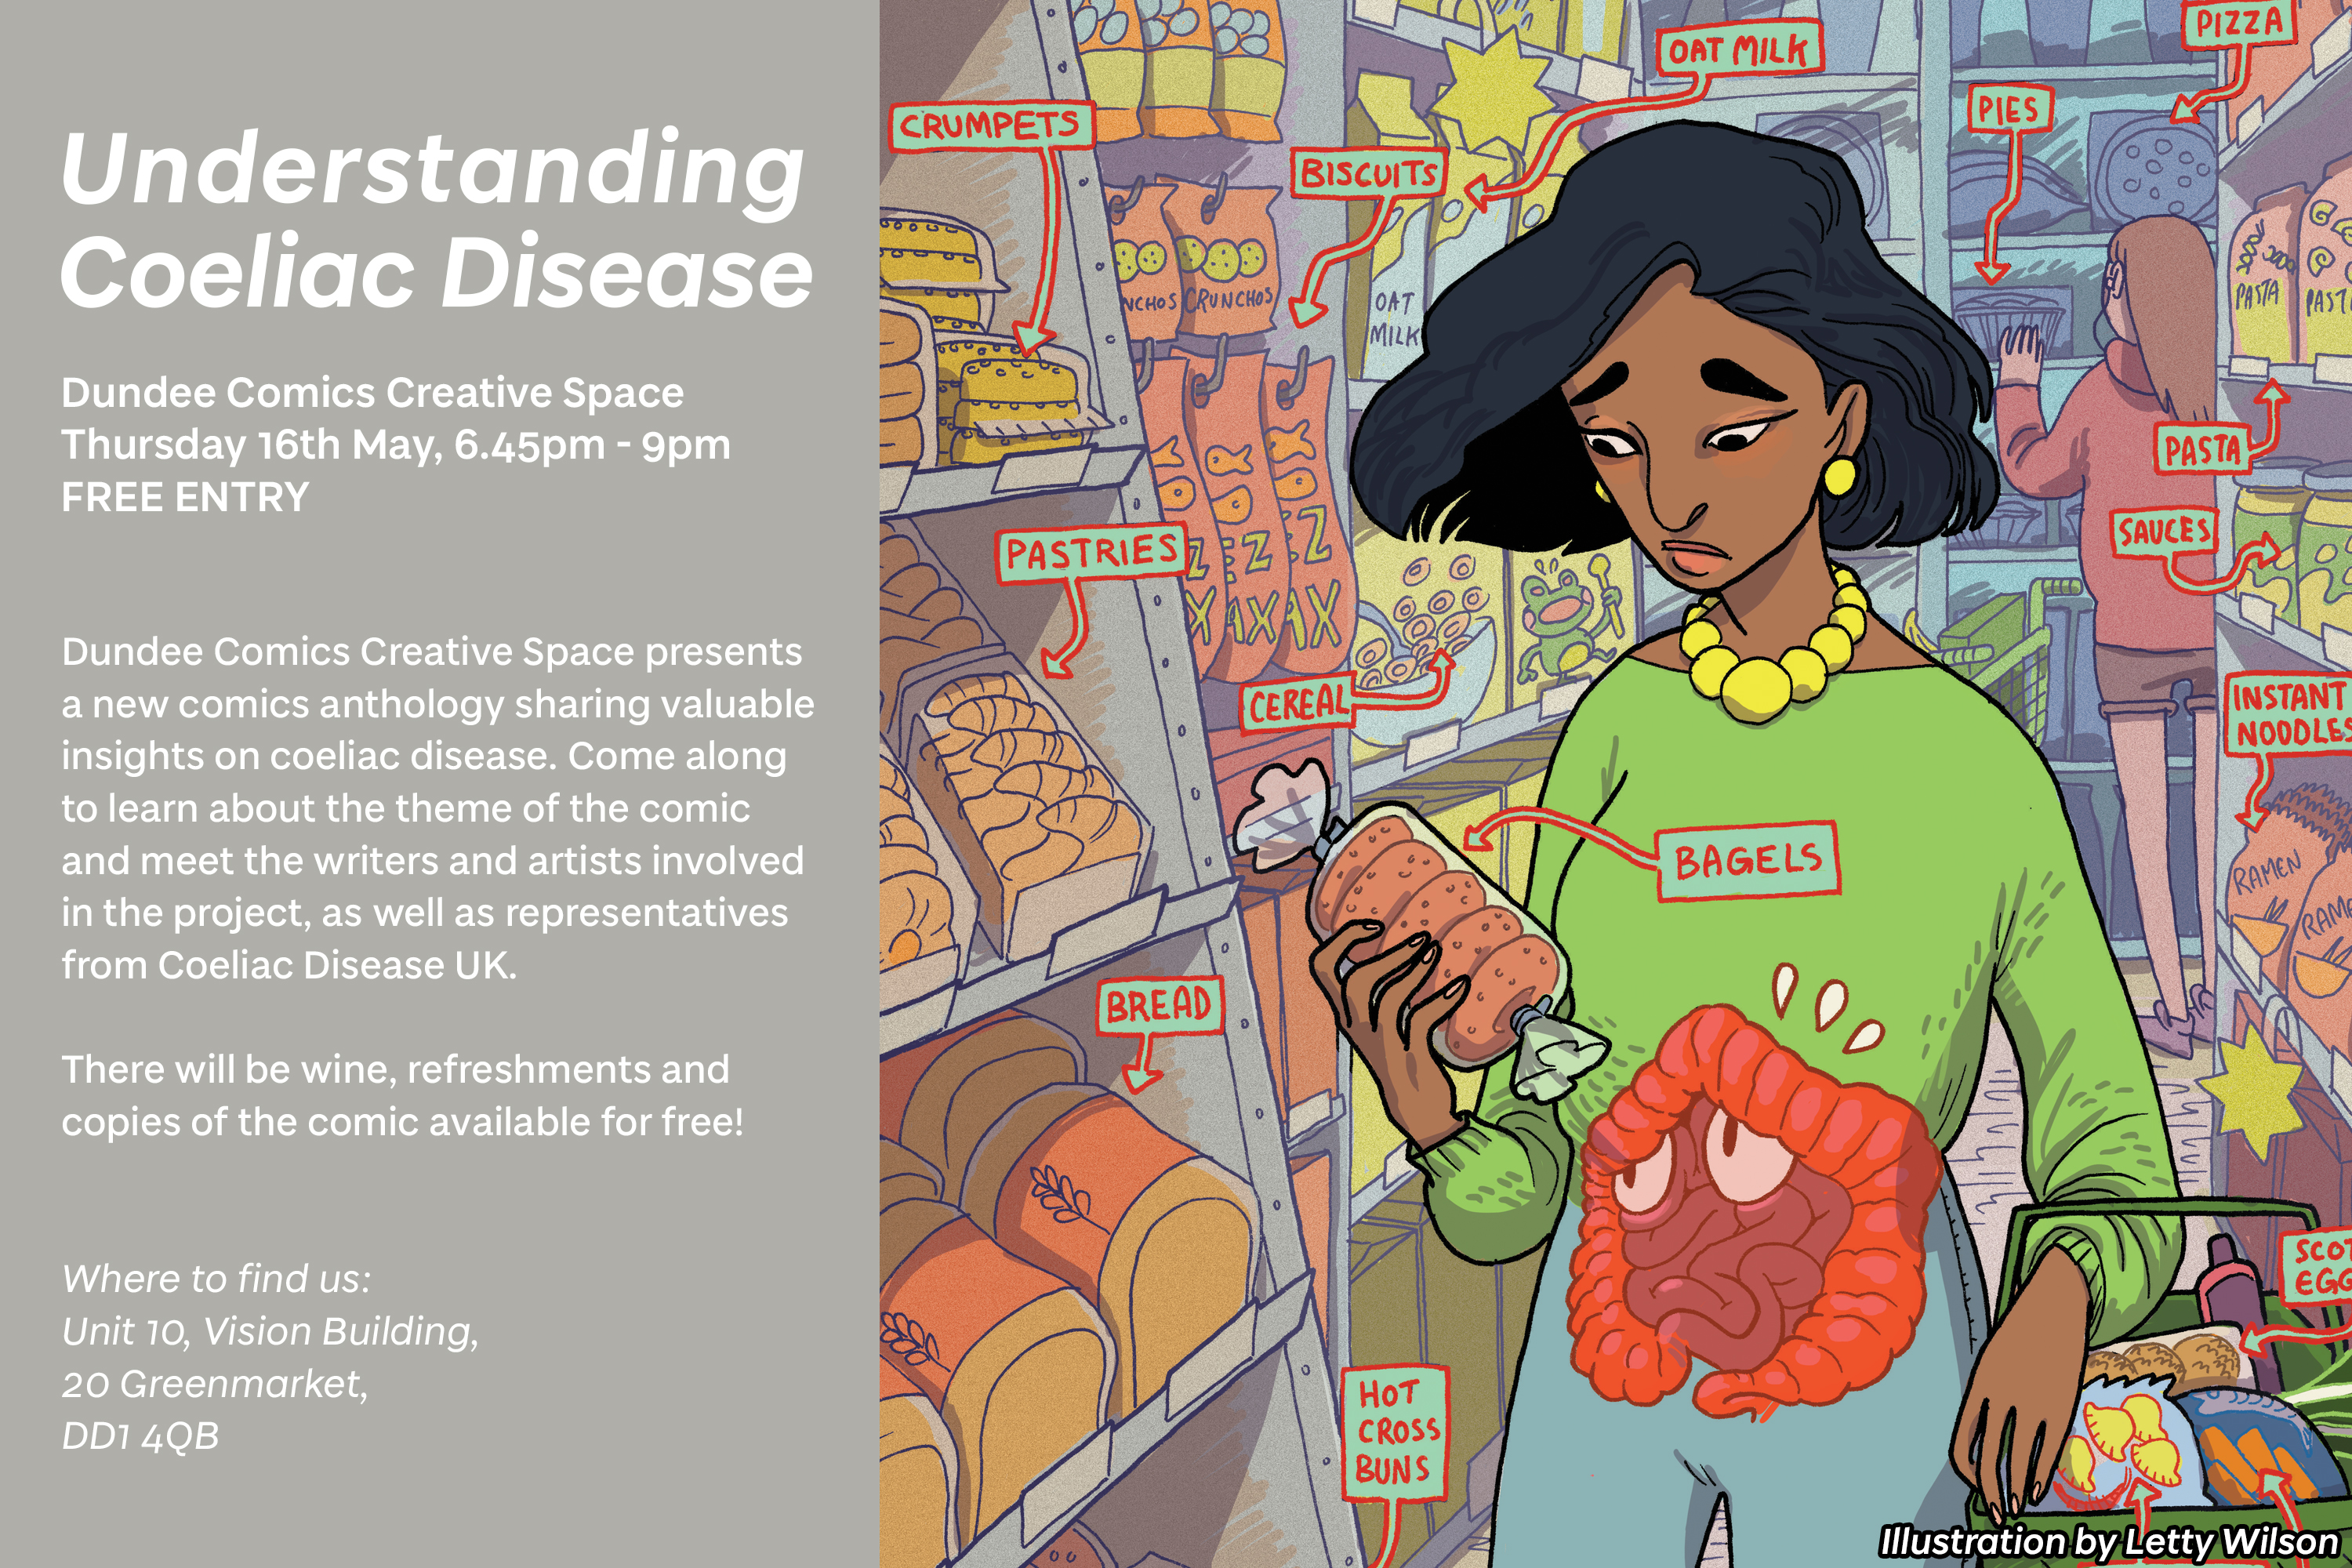 cf6b7a58fc3 We are excited to invite you to the launch of an original comics anthology,  Understanding Coeliac Disease. This comic brings together different  perspectives ...